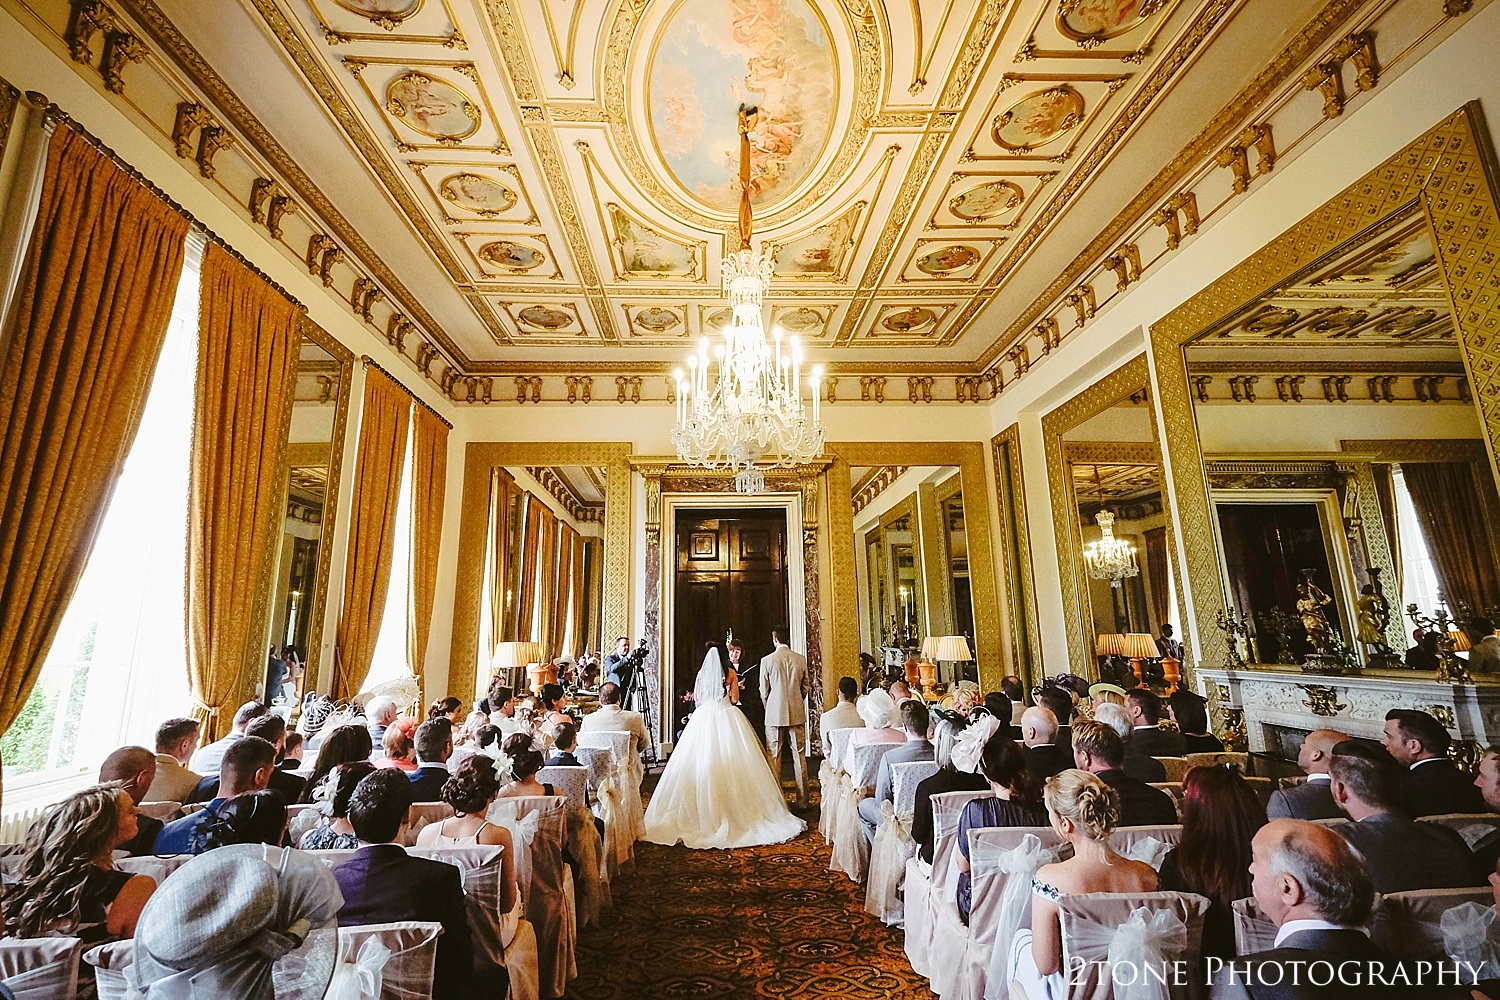 The mirror room wedding ceremony at Wynyard Hall by Newcastle and Durham based Wedding Photographer www.2tonephotography.co.uk